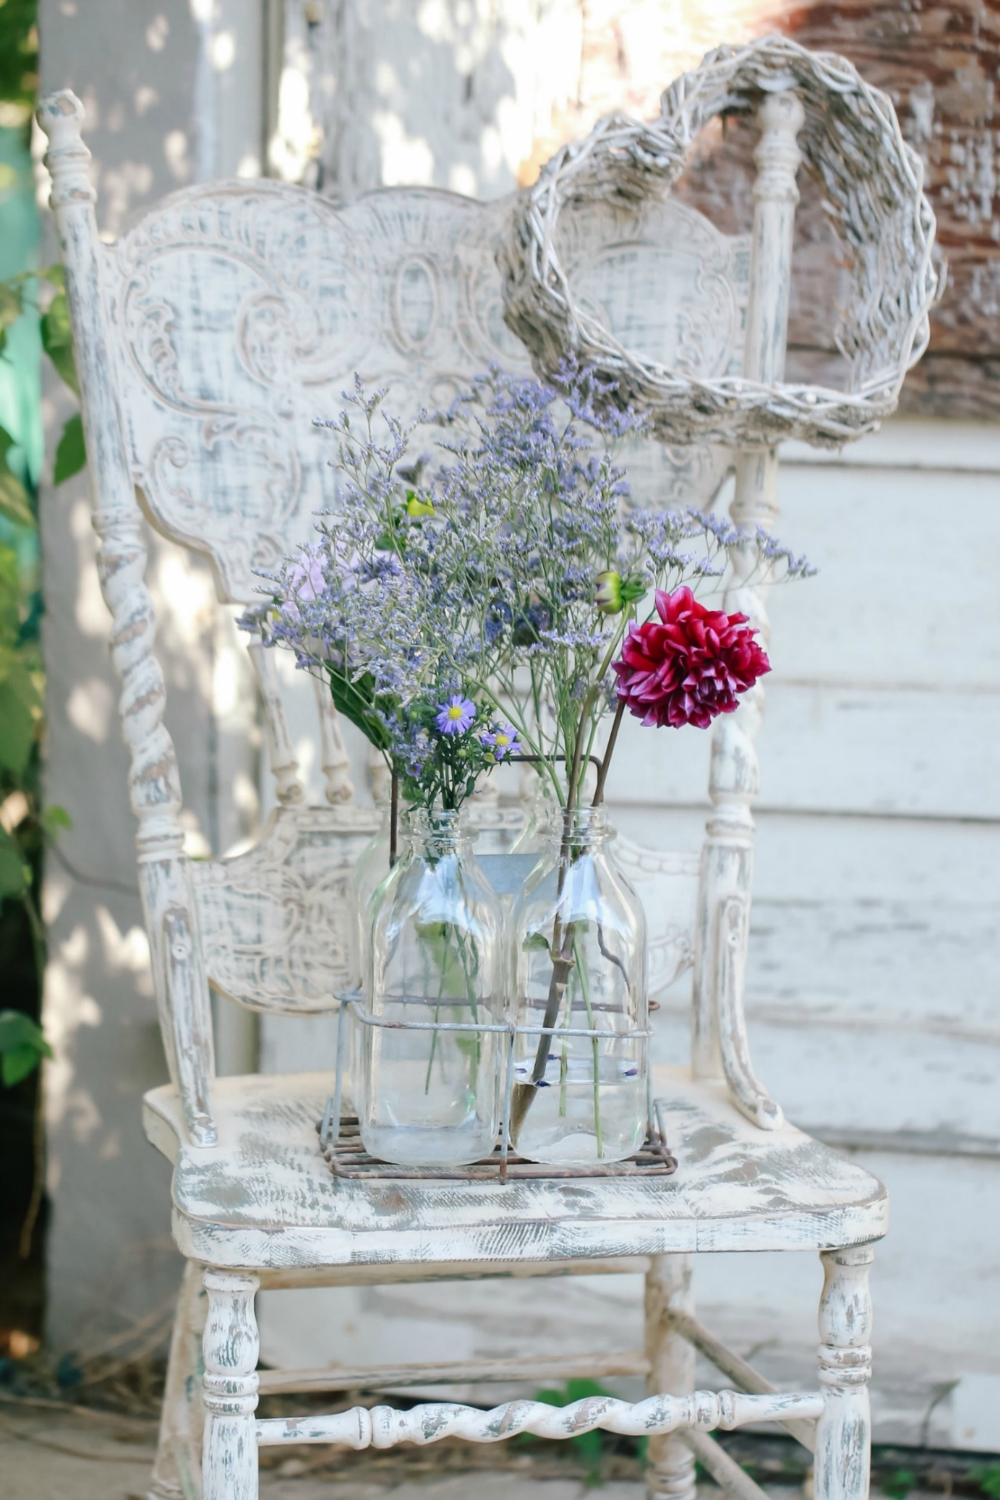 Milk bottle Carrier with Flowers.jpg